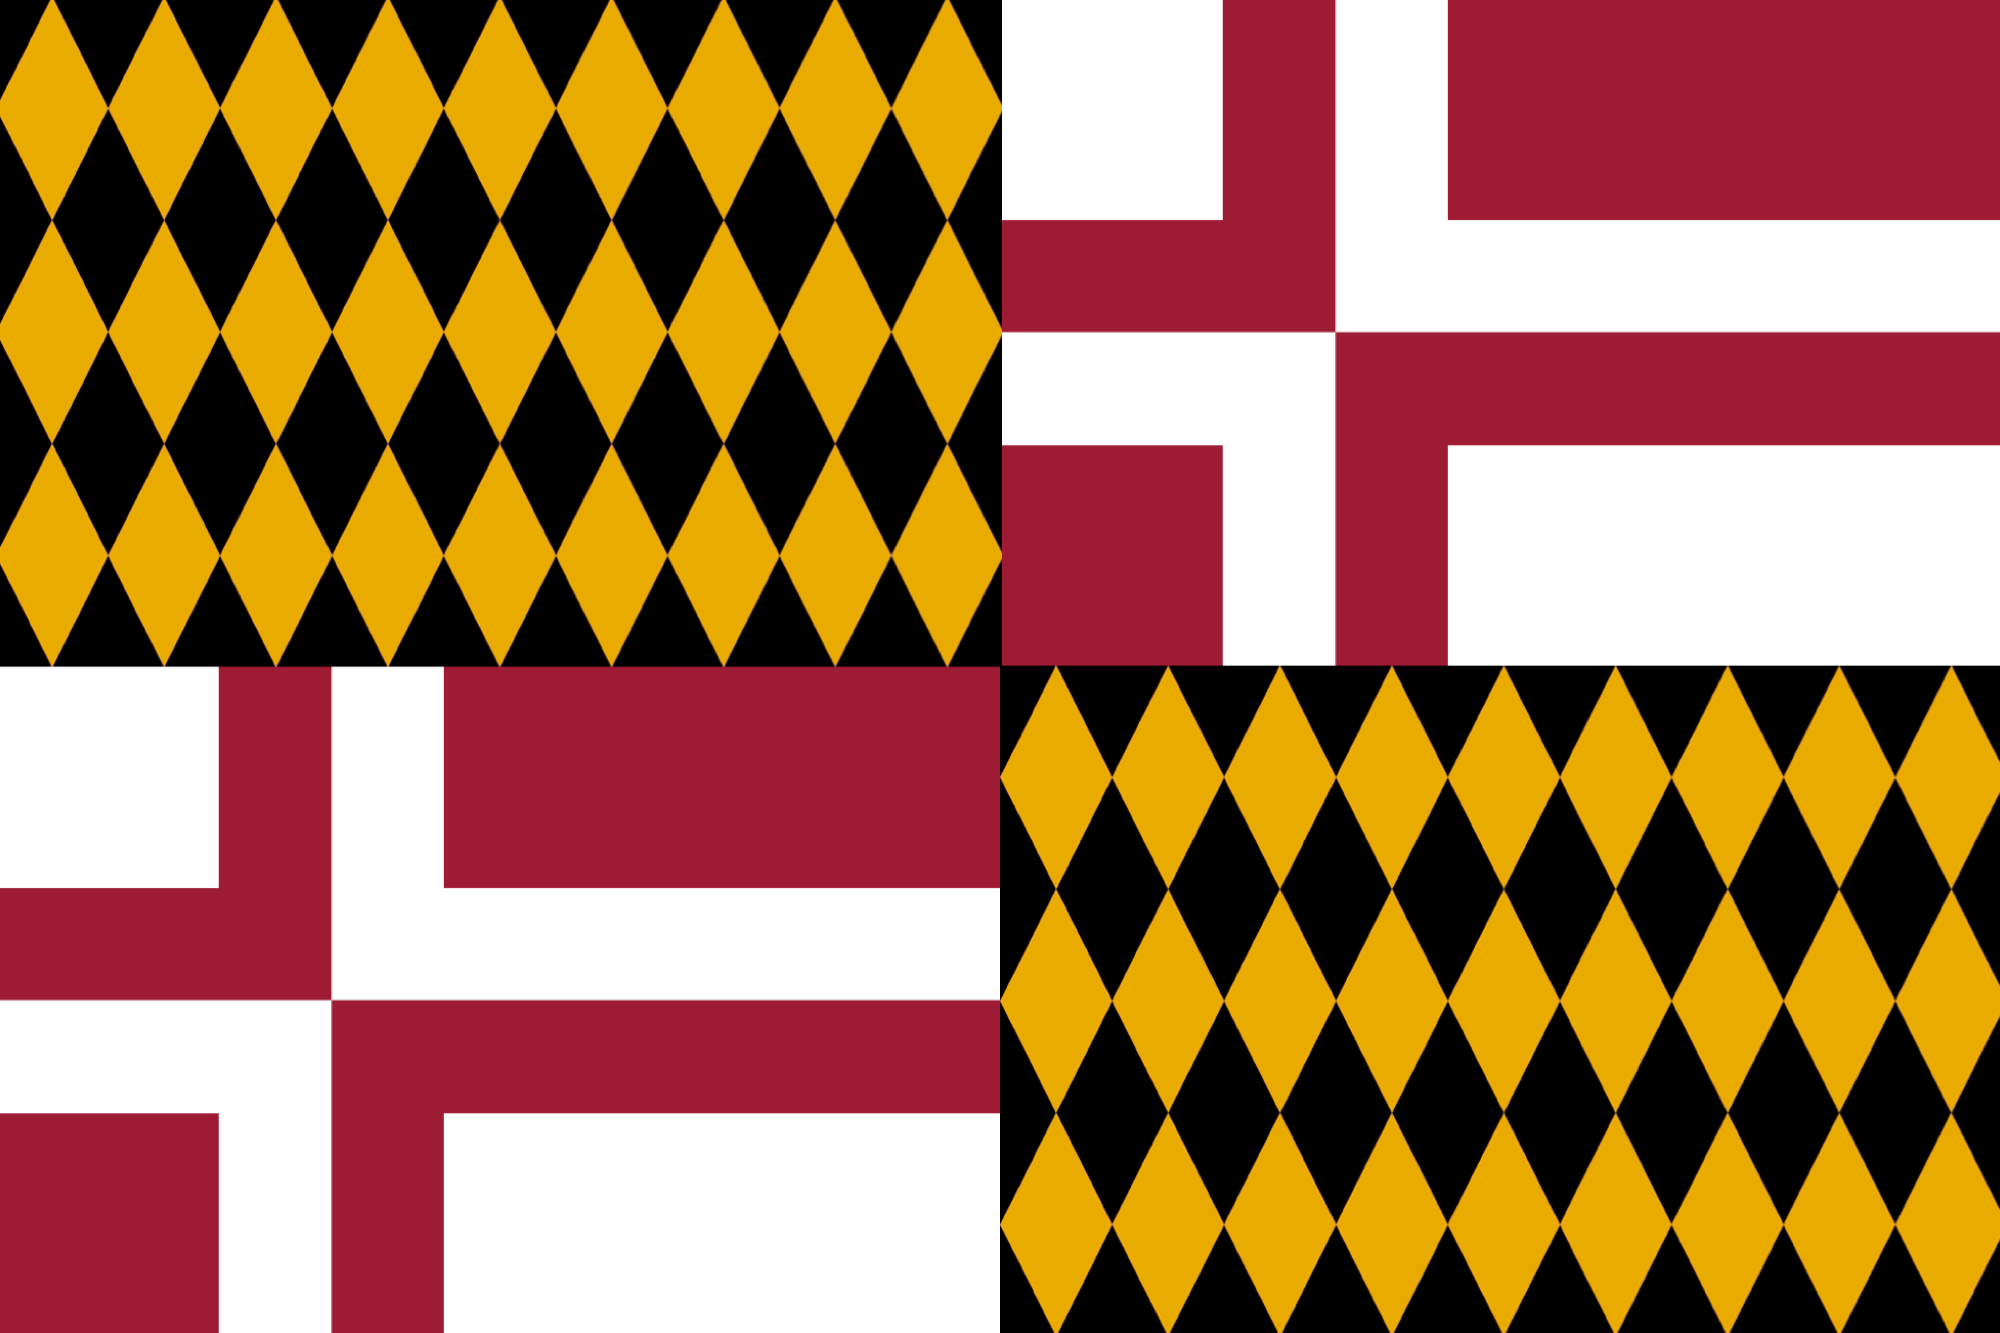 Image Result For Redesign Flag Maryland Tech Company Logos Flag Redesign